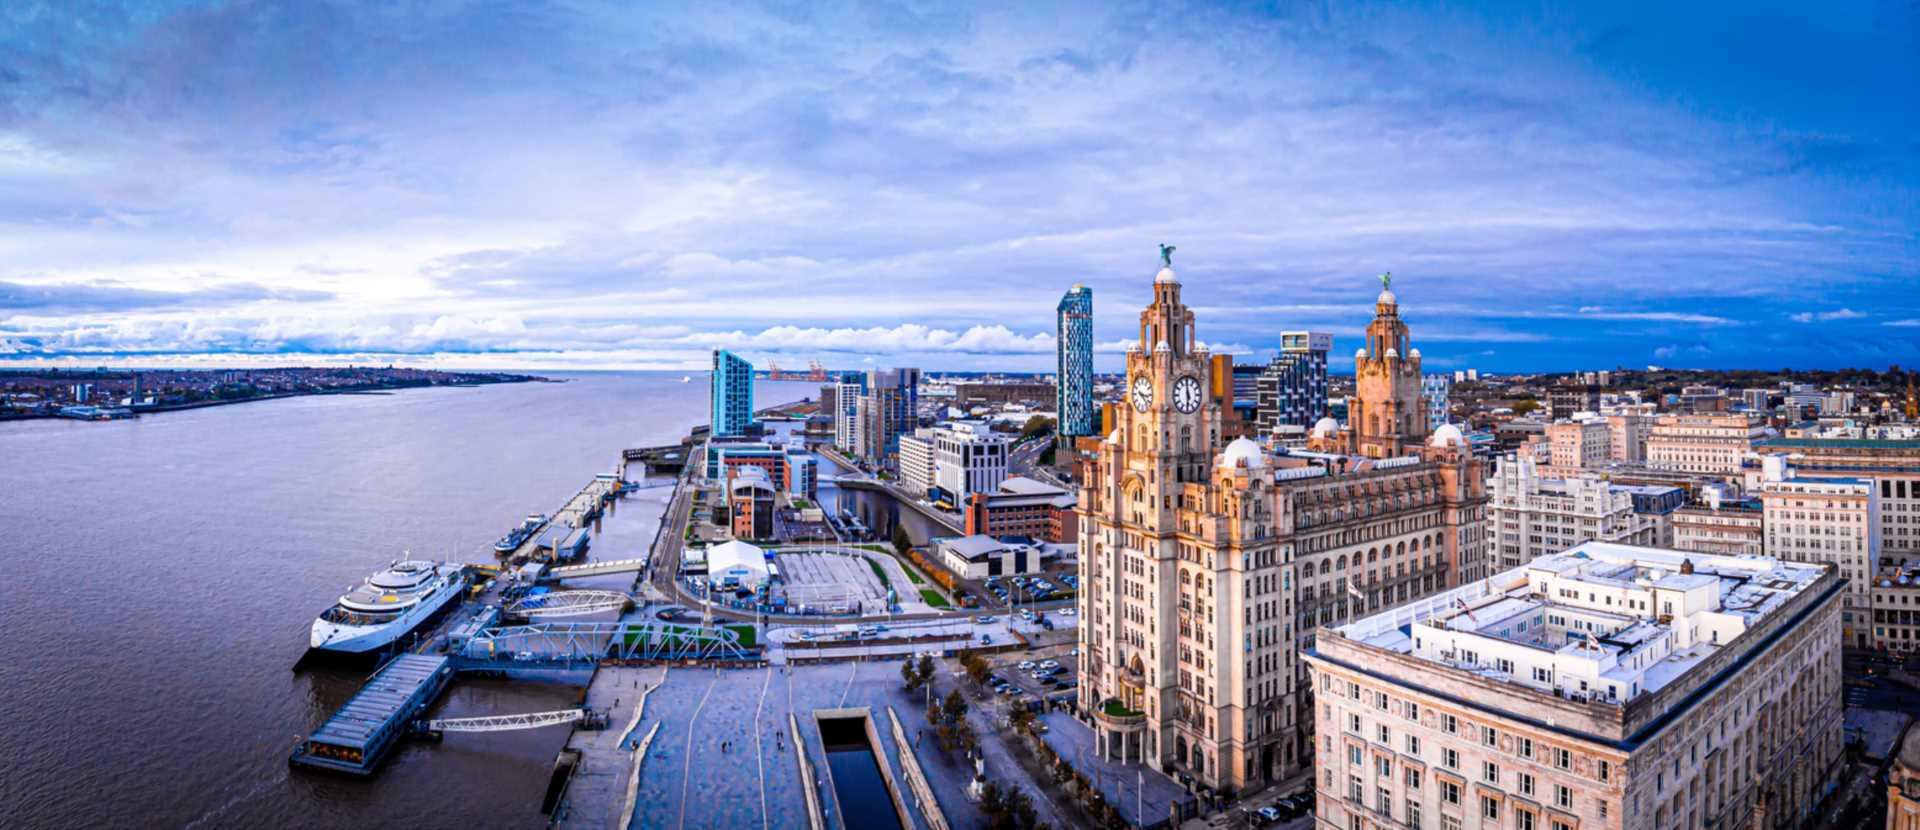 Liverpool named one of the best places to live in the North West